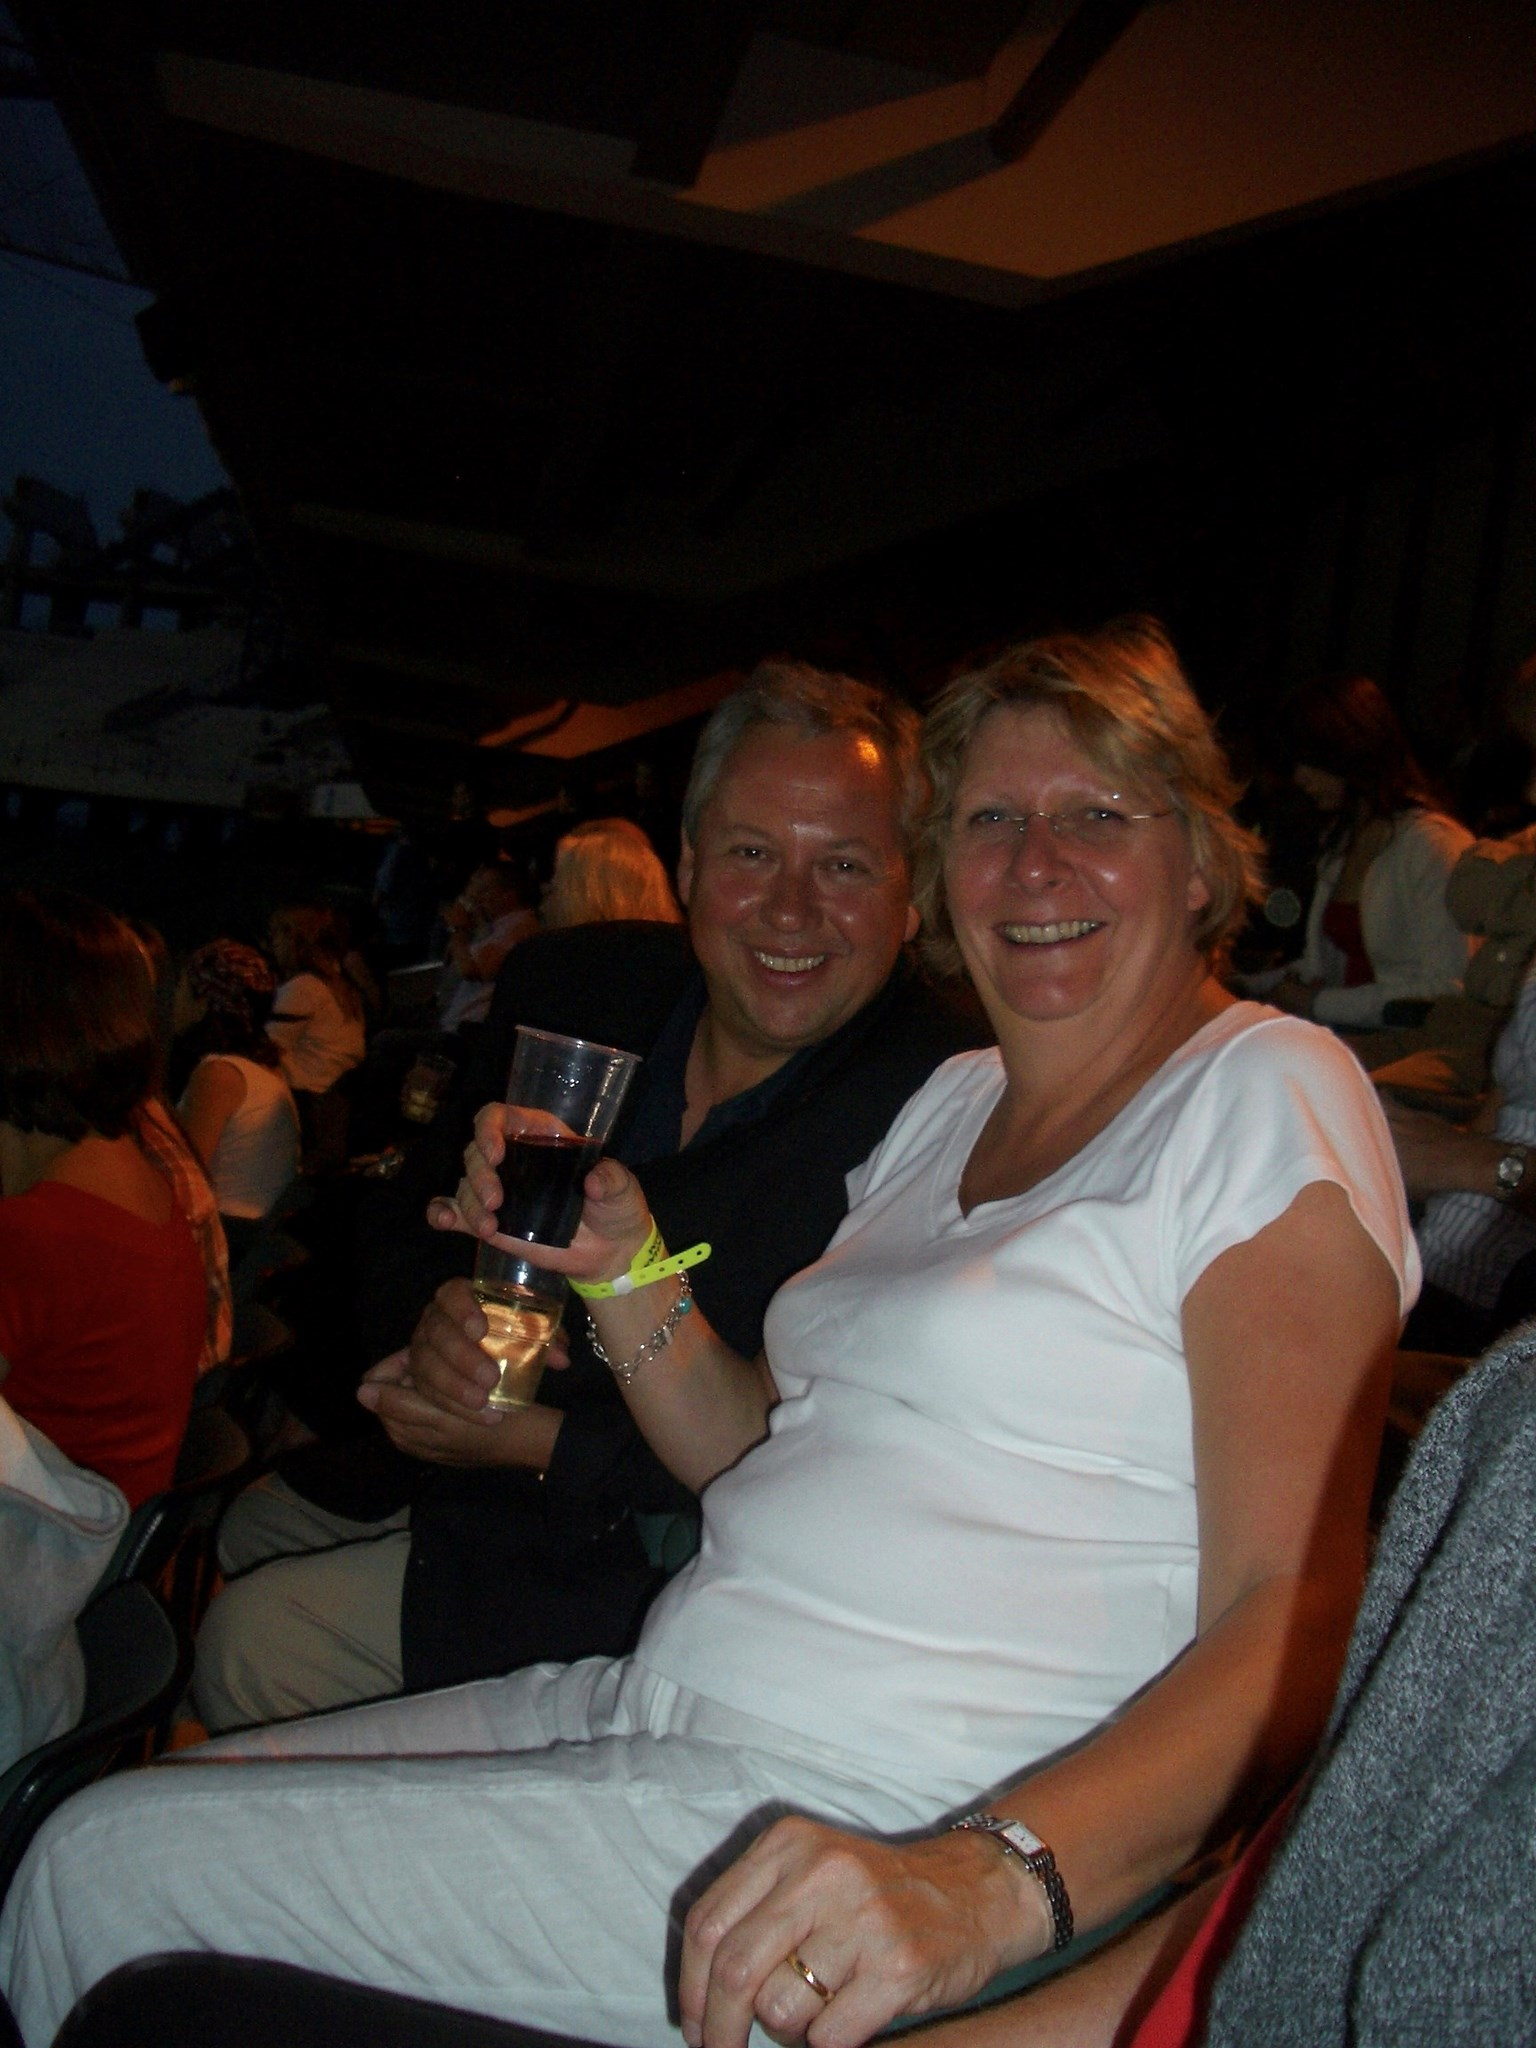 Carrie & Paul grooving at the Rolling Stones! One of many happy days & happy memories!